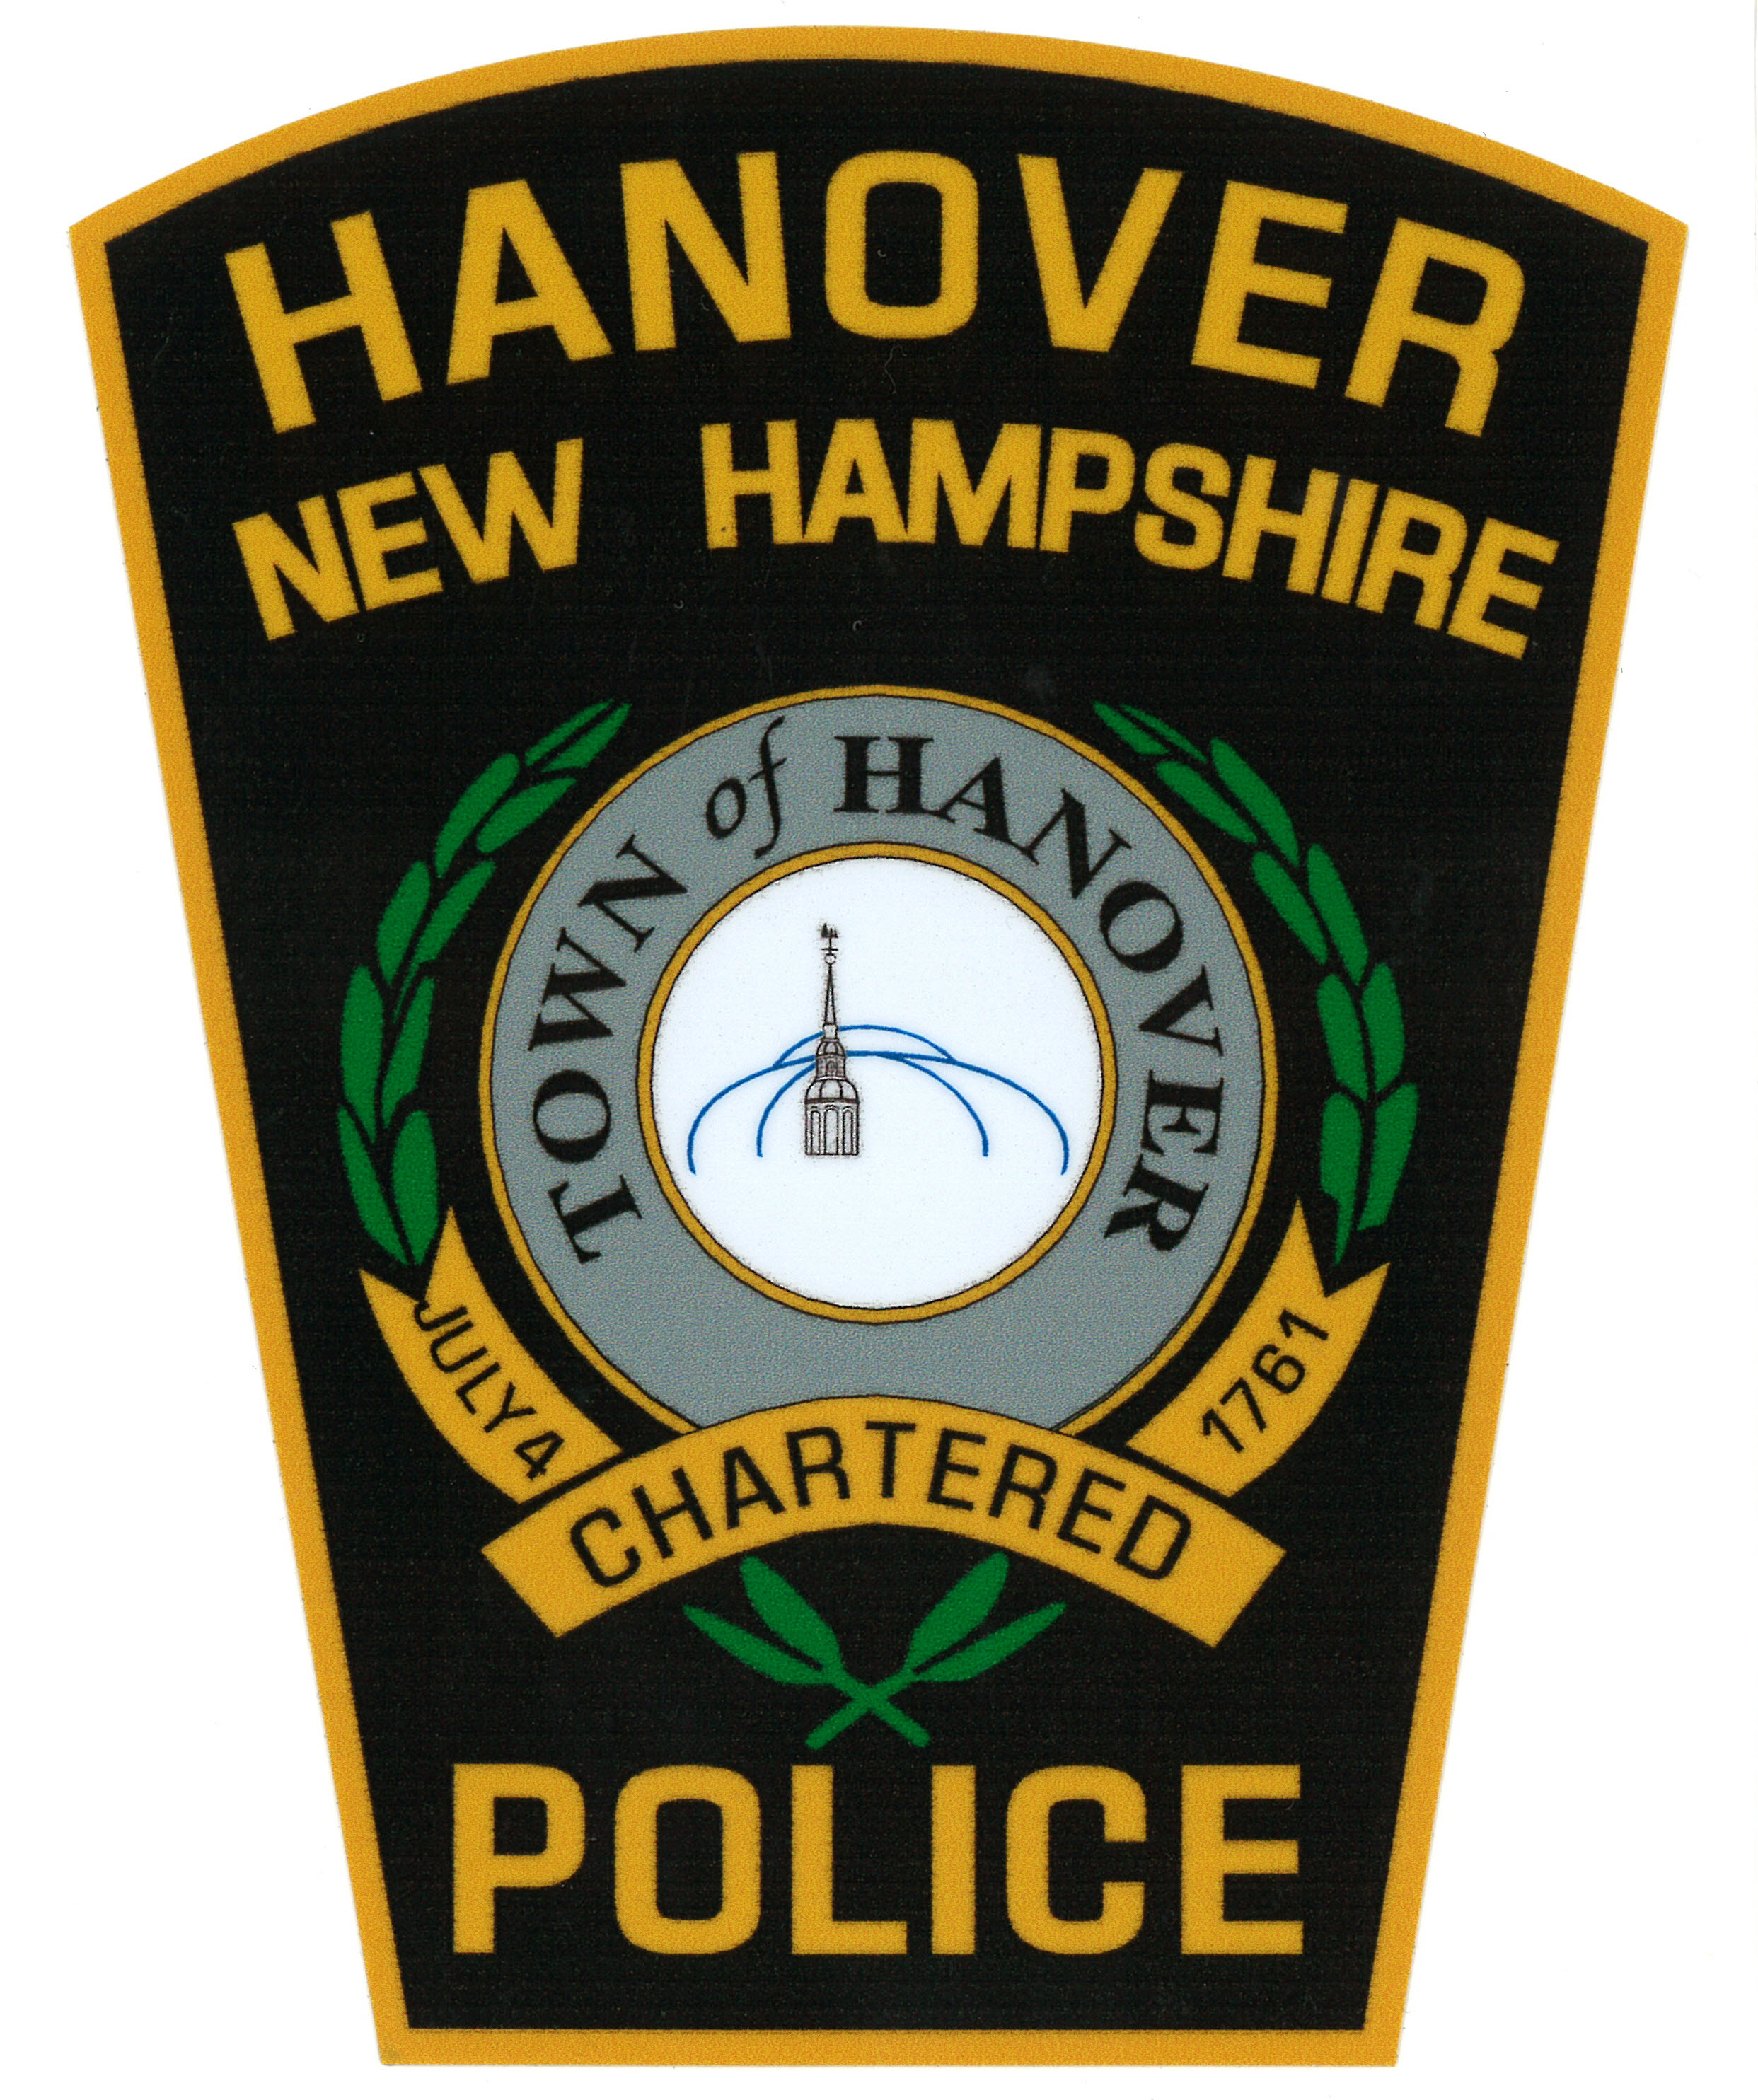 Hanover Police Department, NH Public Safety Jobs